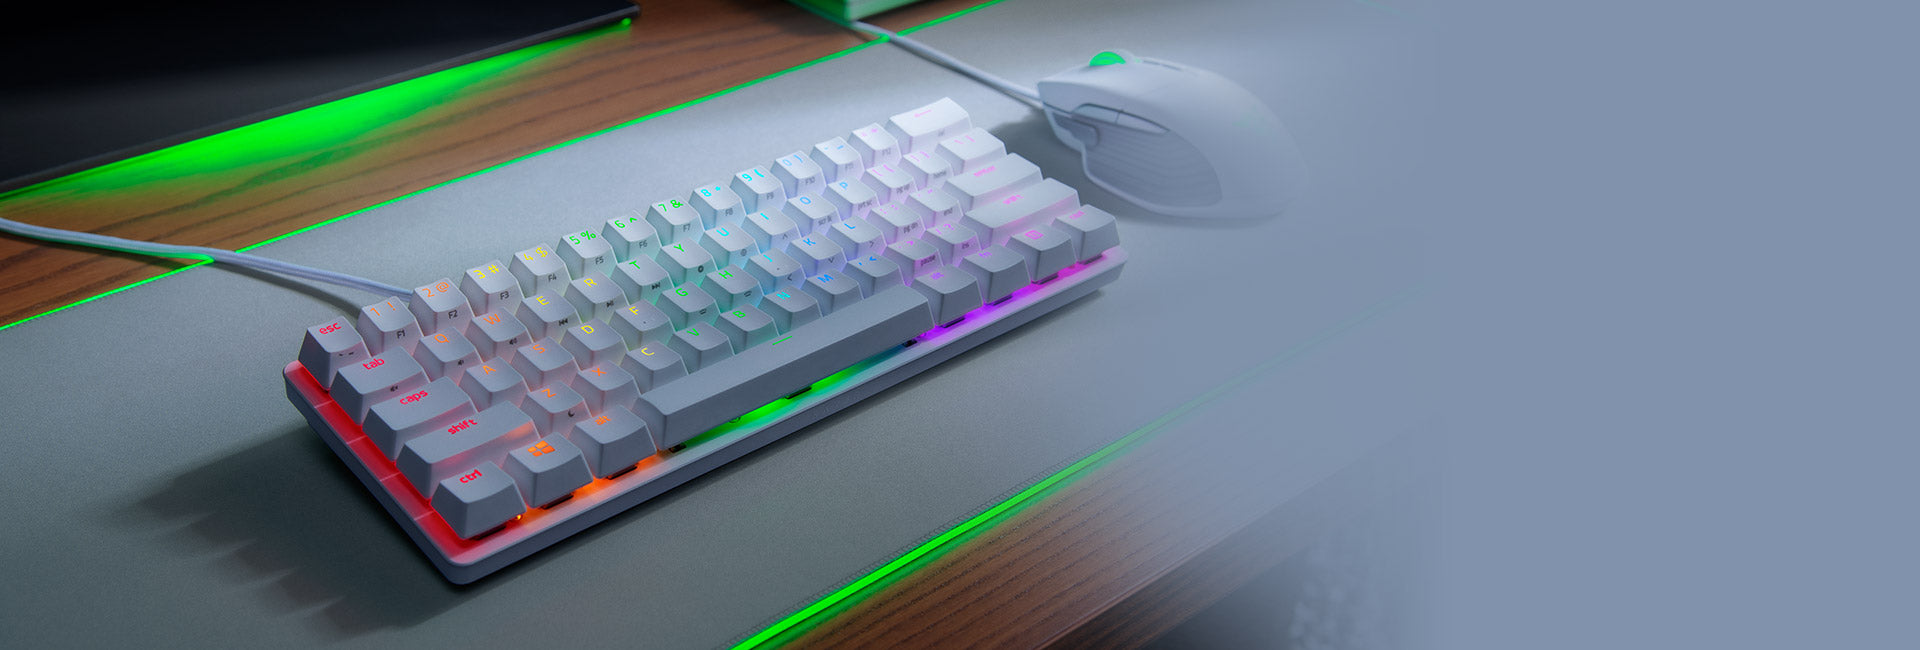 60% FORM FACTOR* The Razer Huntsman Mini doesn't have the function row, home cluster and numpad of a traditional full-sized keyboard, yet loses no functionality because all these inputs are still accessible via secondary functions and shortcuts. Ideal for minimalist or smaller setups where desk space is a premium, its compact build also means it travels well and is easier to position when gaming—allowing you to play more comfortably.